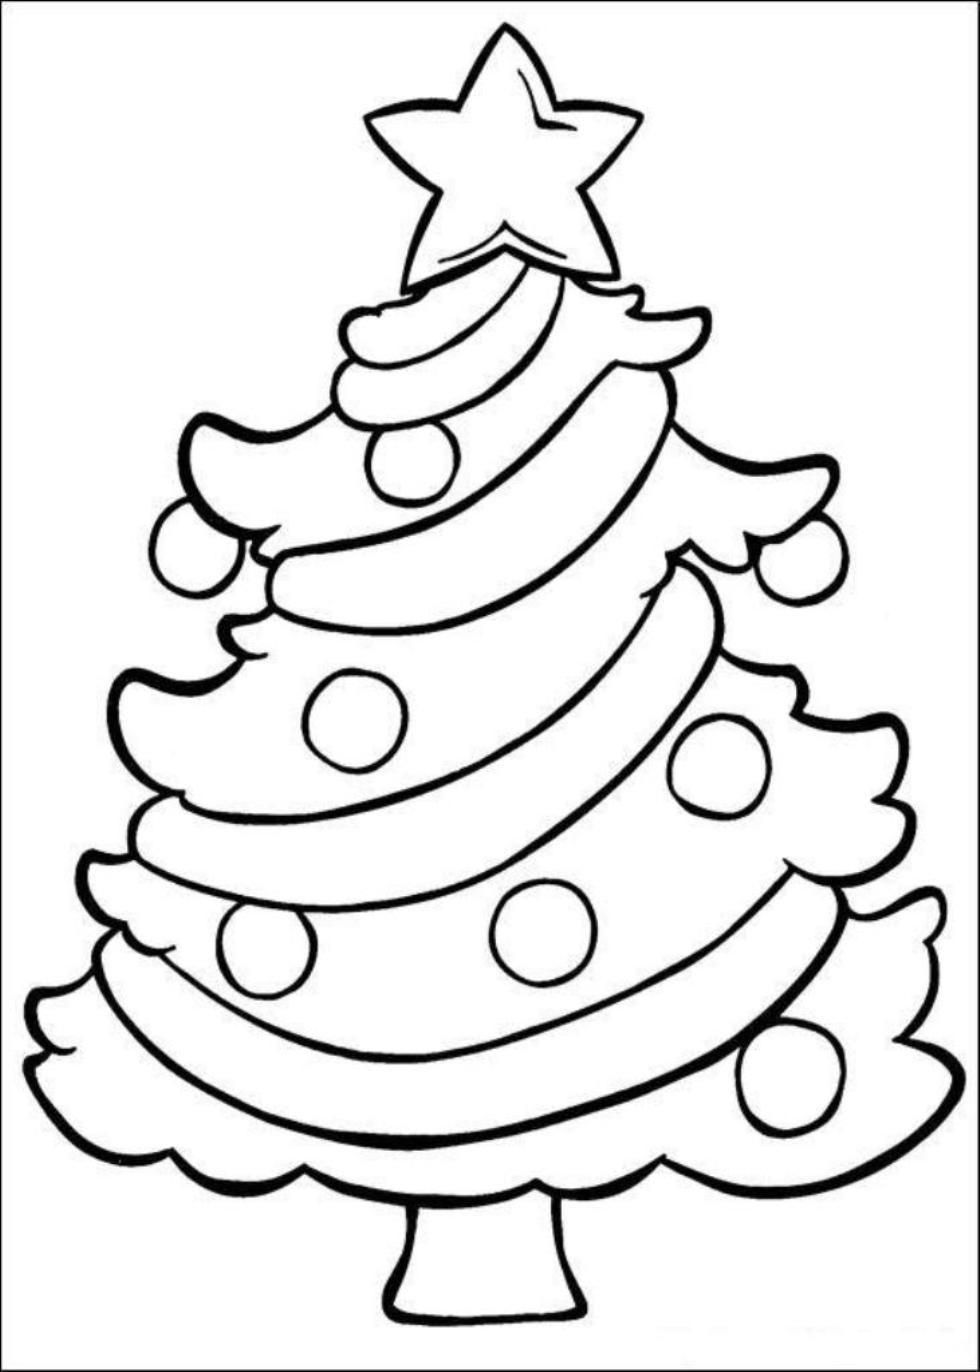 980x1372 Coloring Pages Christmas Easy Simple Colorings